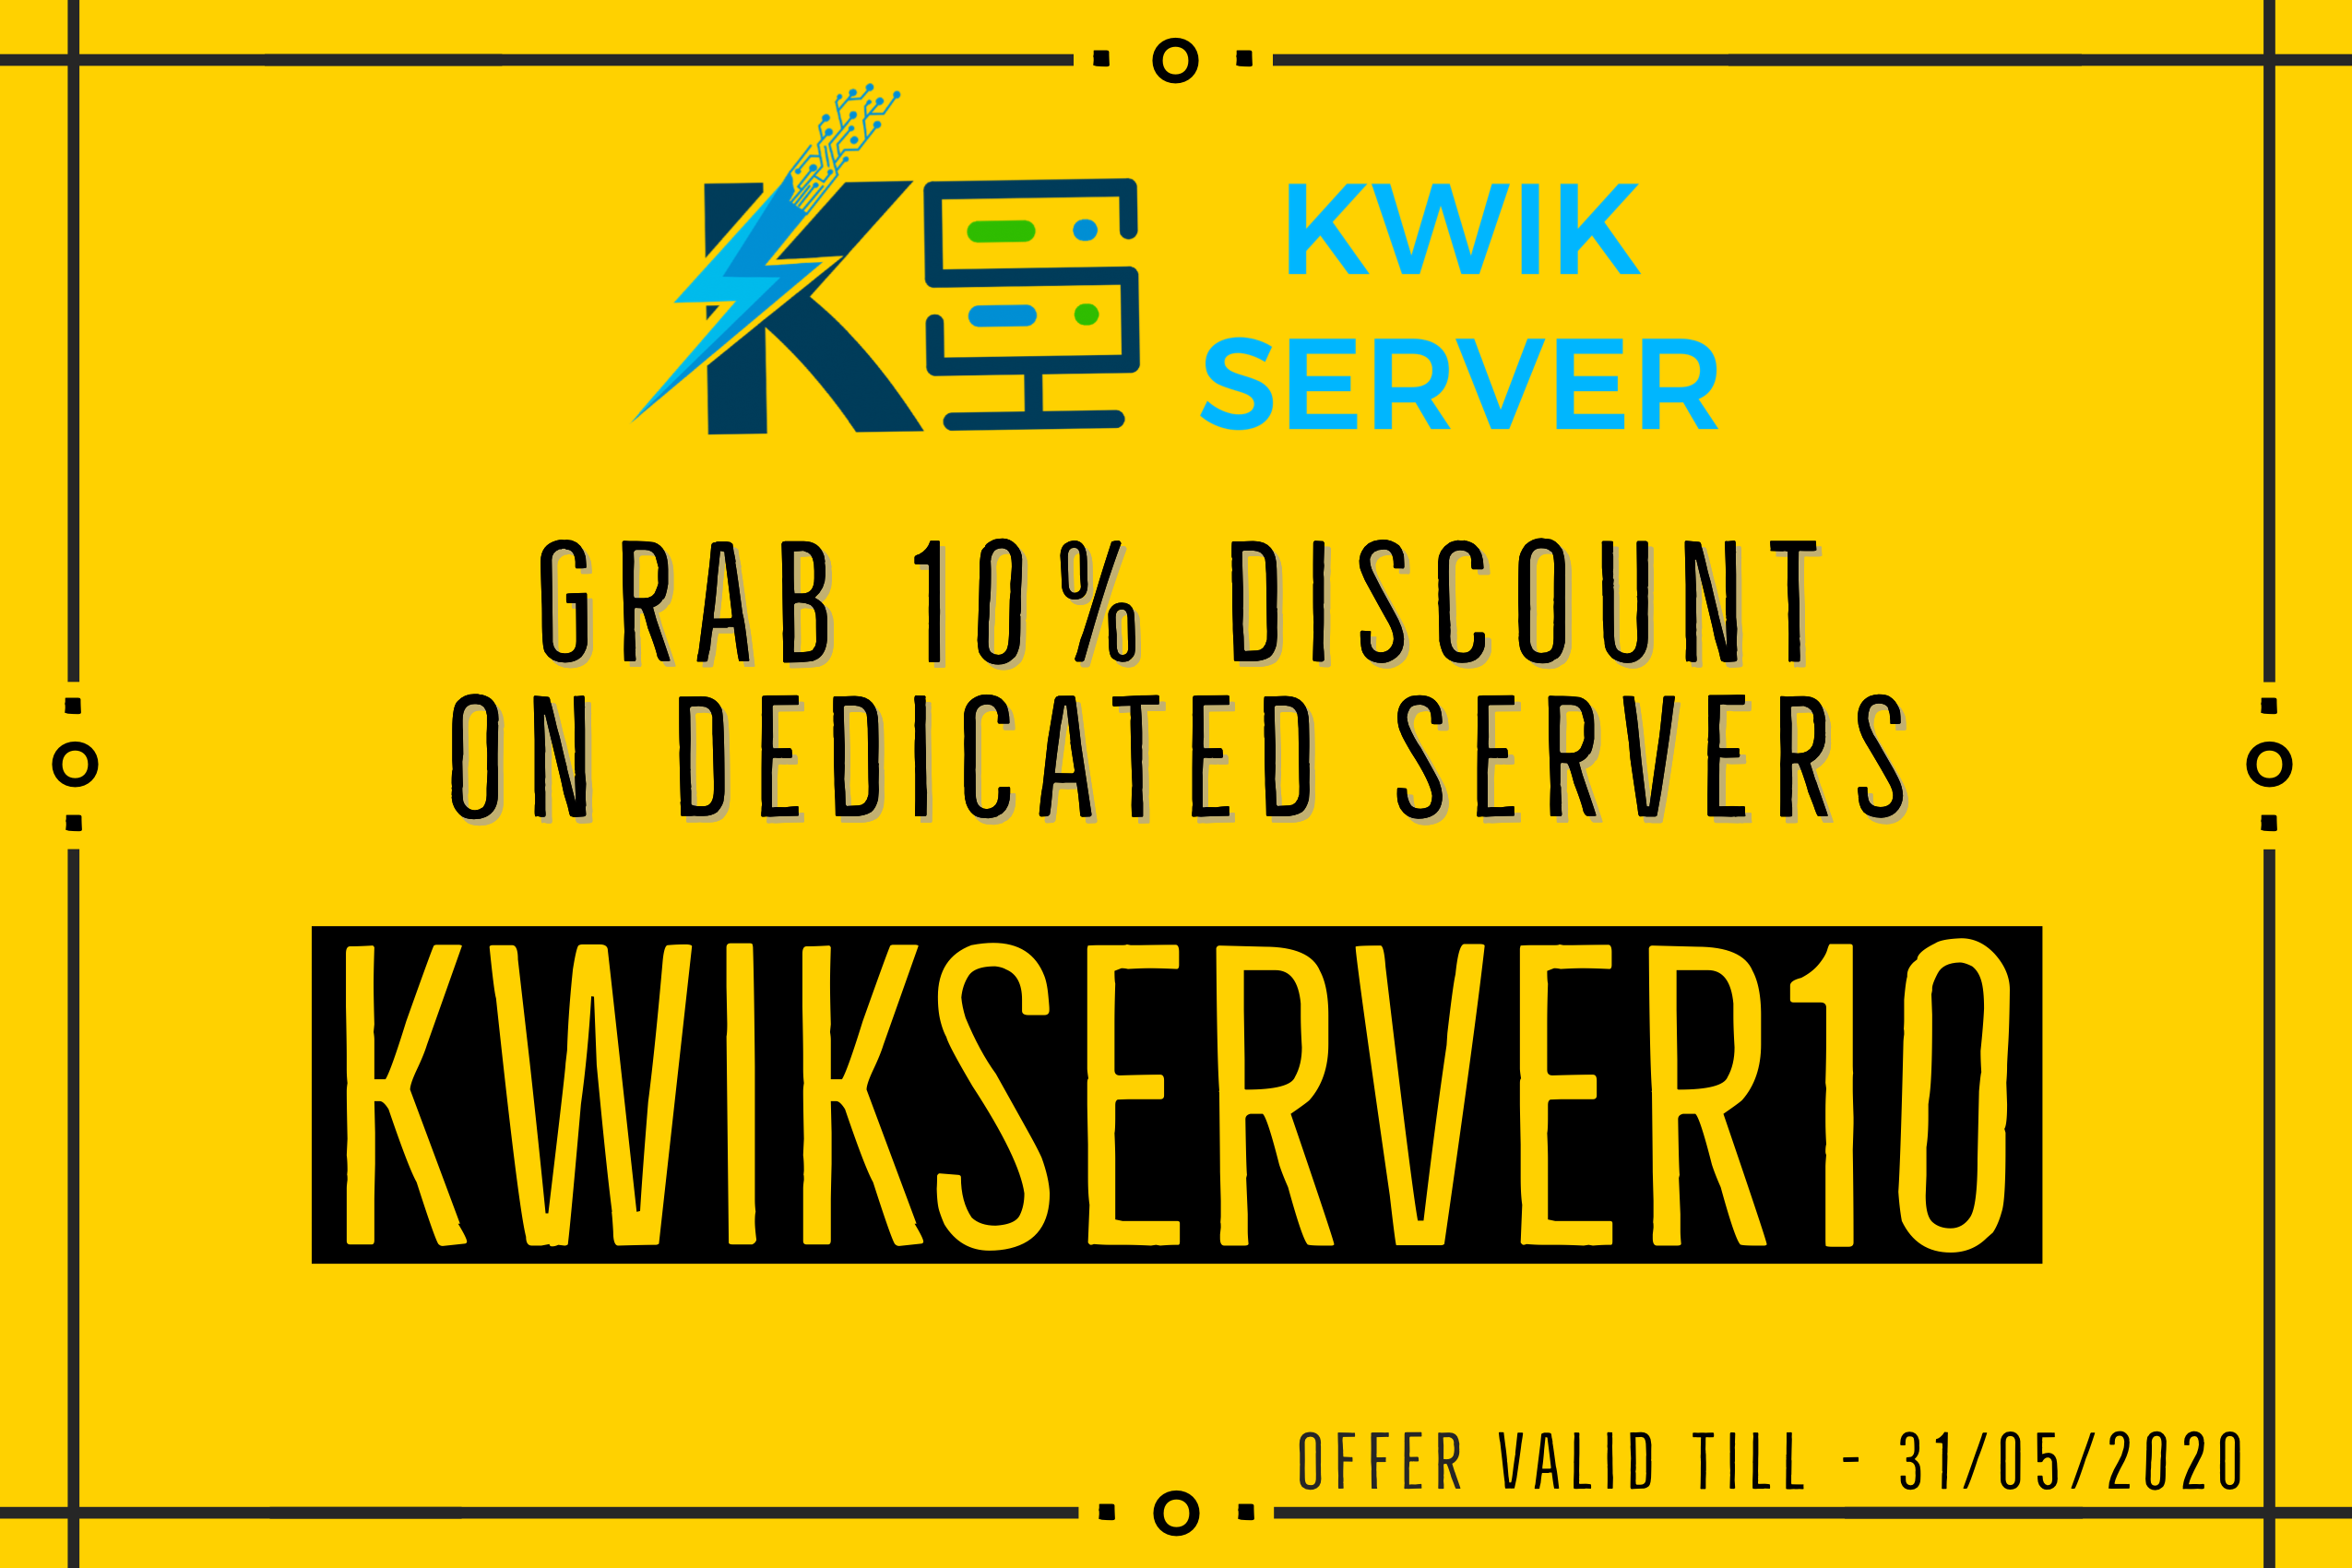 10% discount on dedicated server